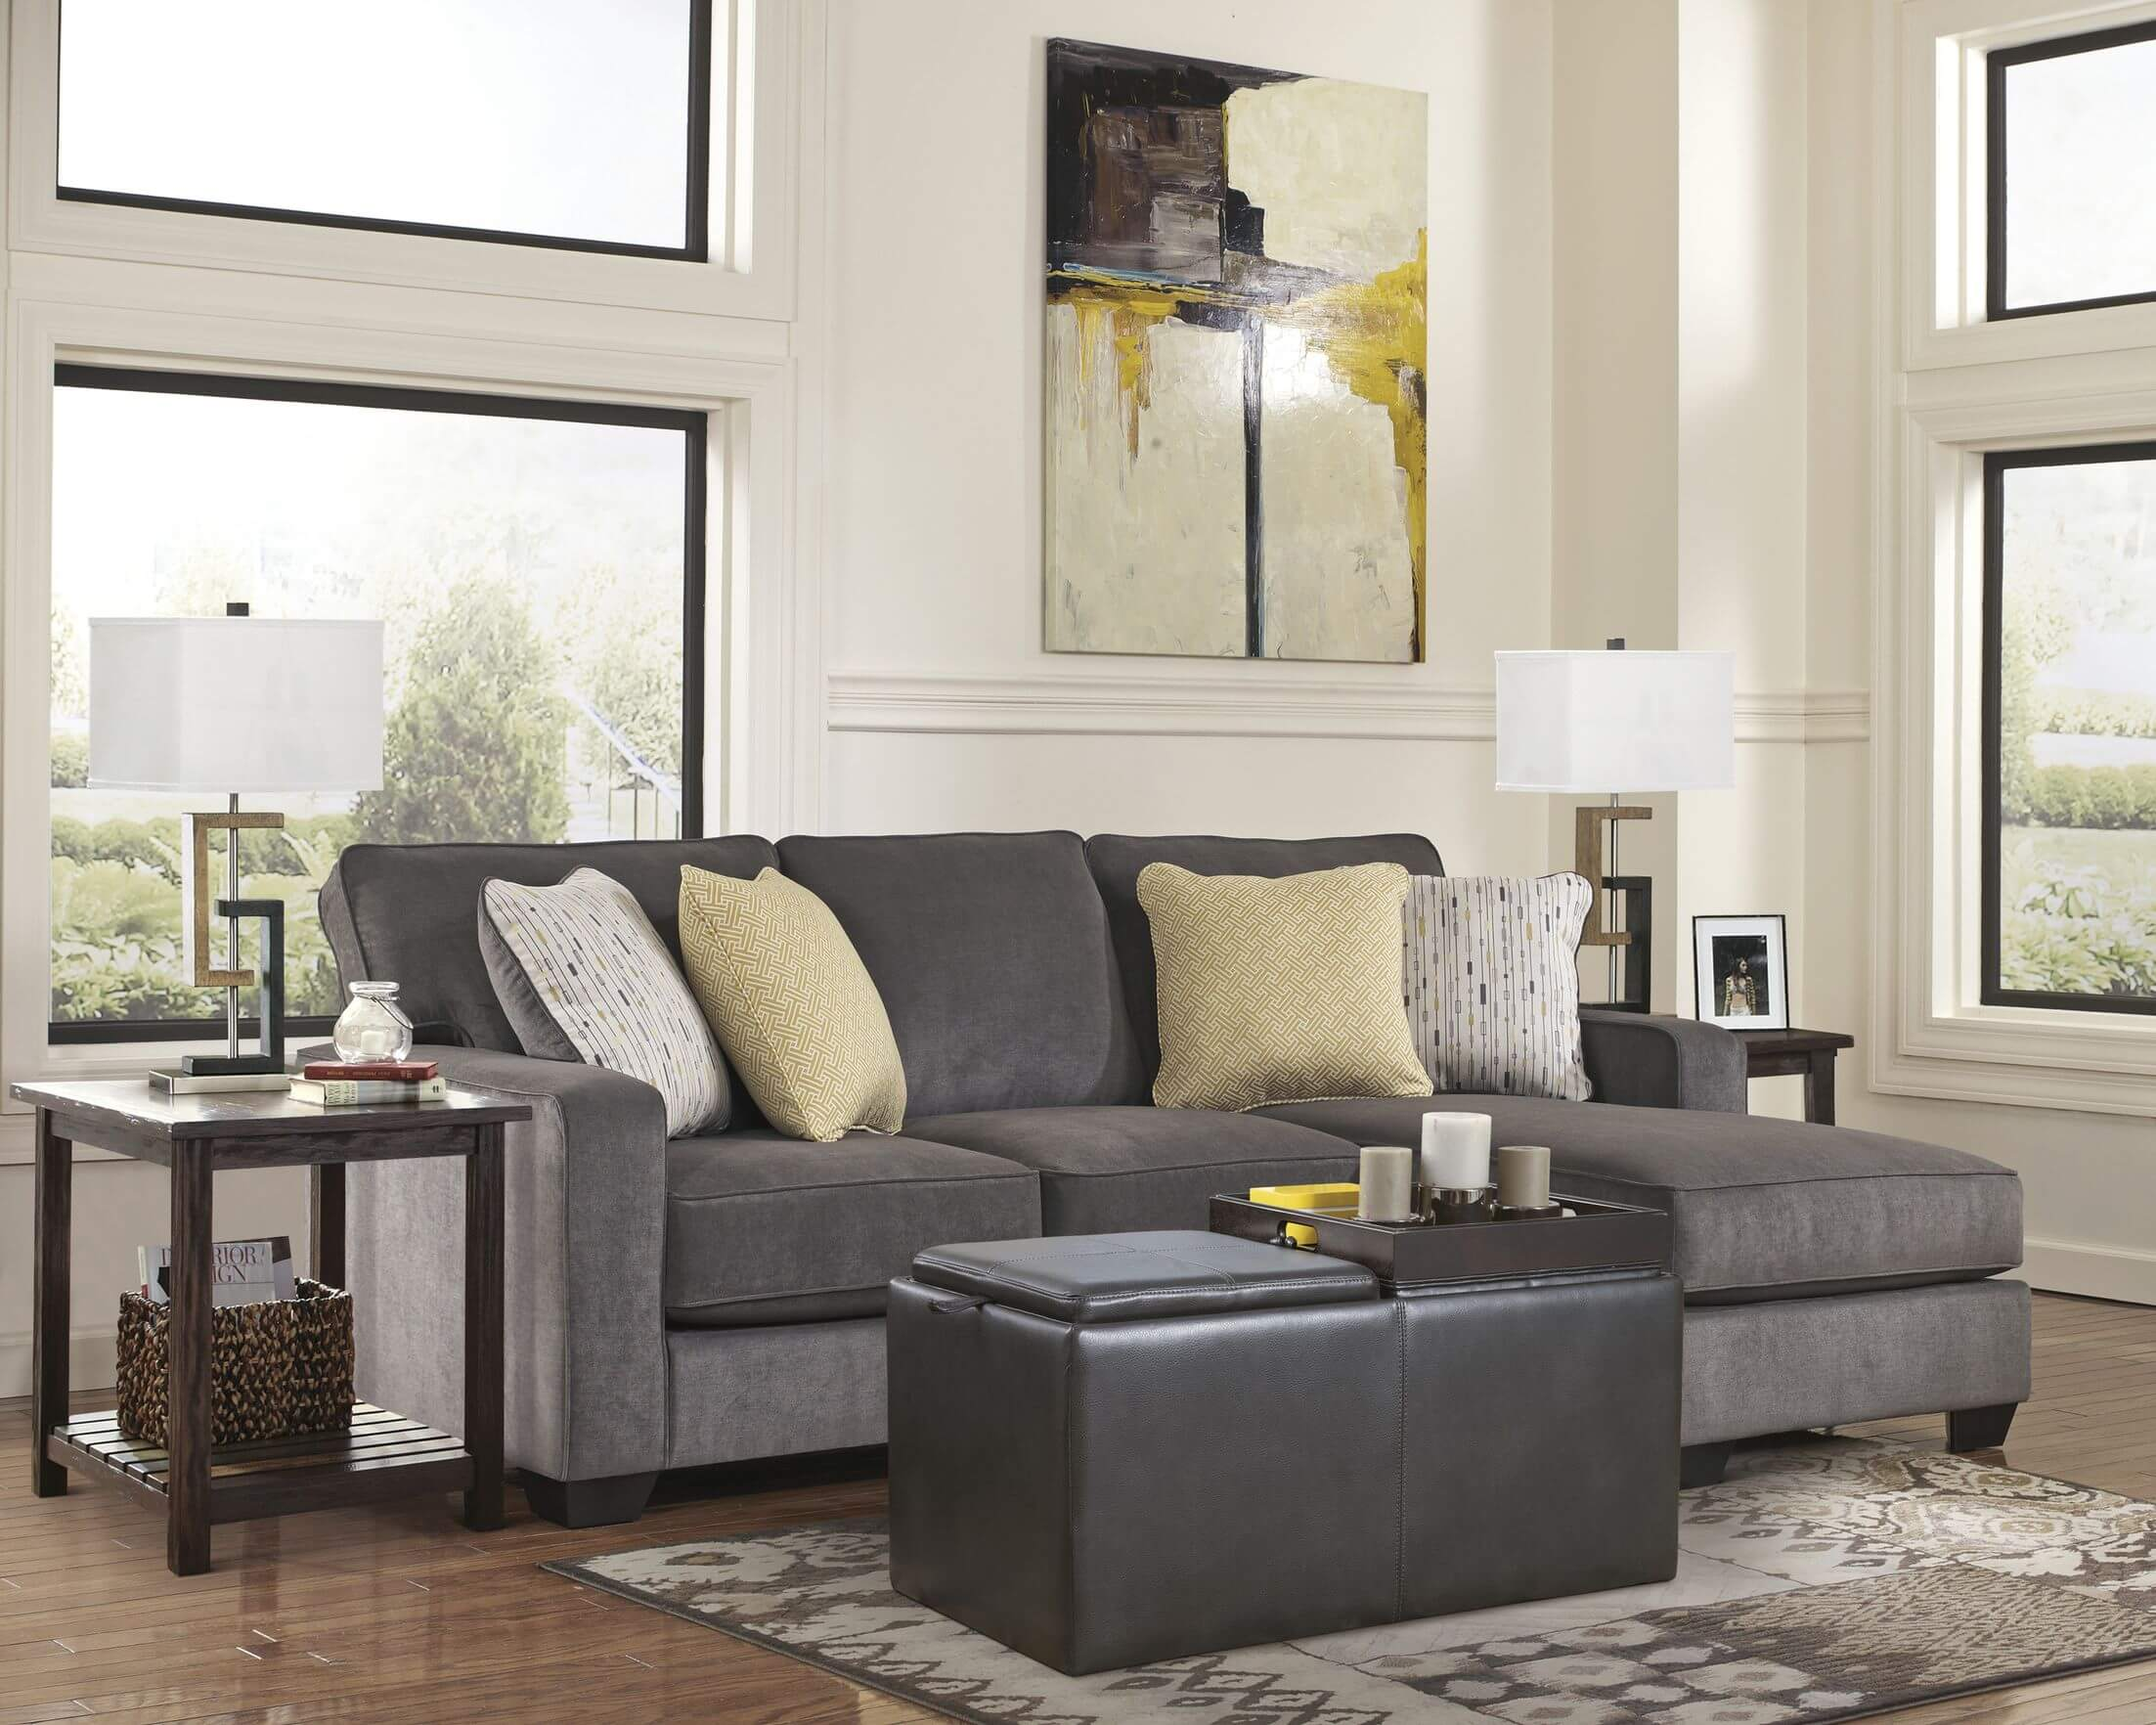 45 Contemporary Living Rooms with Sectional Sofas